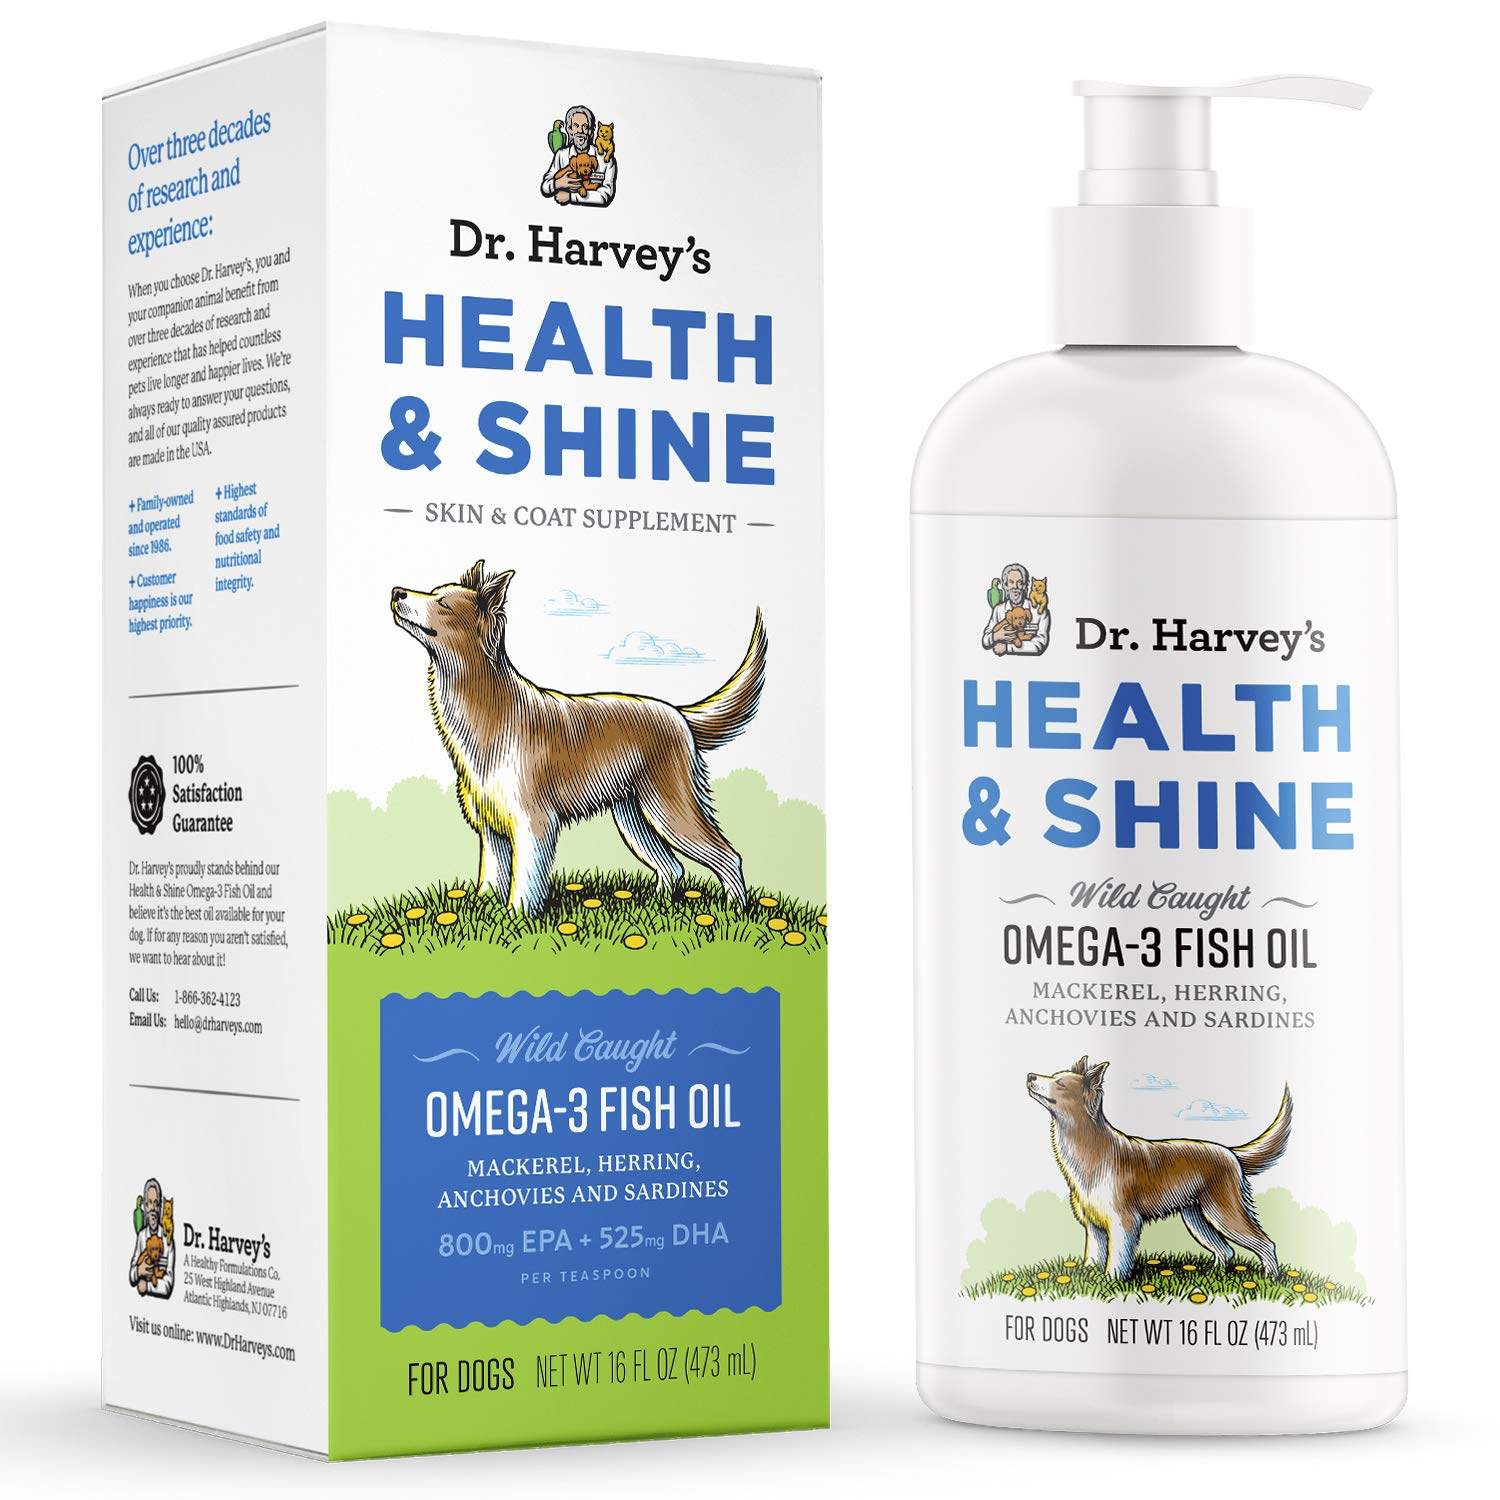 Dr. Harvey's Health & Shine Omega-3 Fish Oil Supplement for Dogs from Wild Caught Mackerel, Herring, Anchovies and Sardines - Supports Beautiful Fur, Strong Joints and Itchy Allergy Relief (16 FL OZ) by Dr. Harvey's